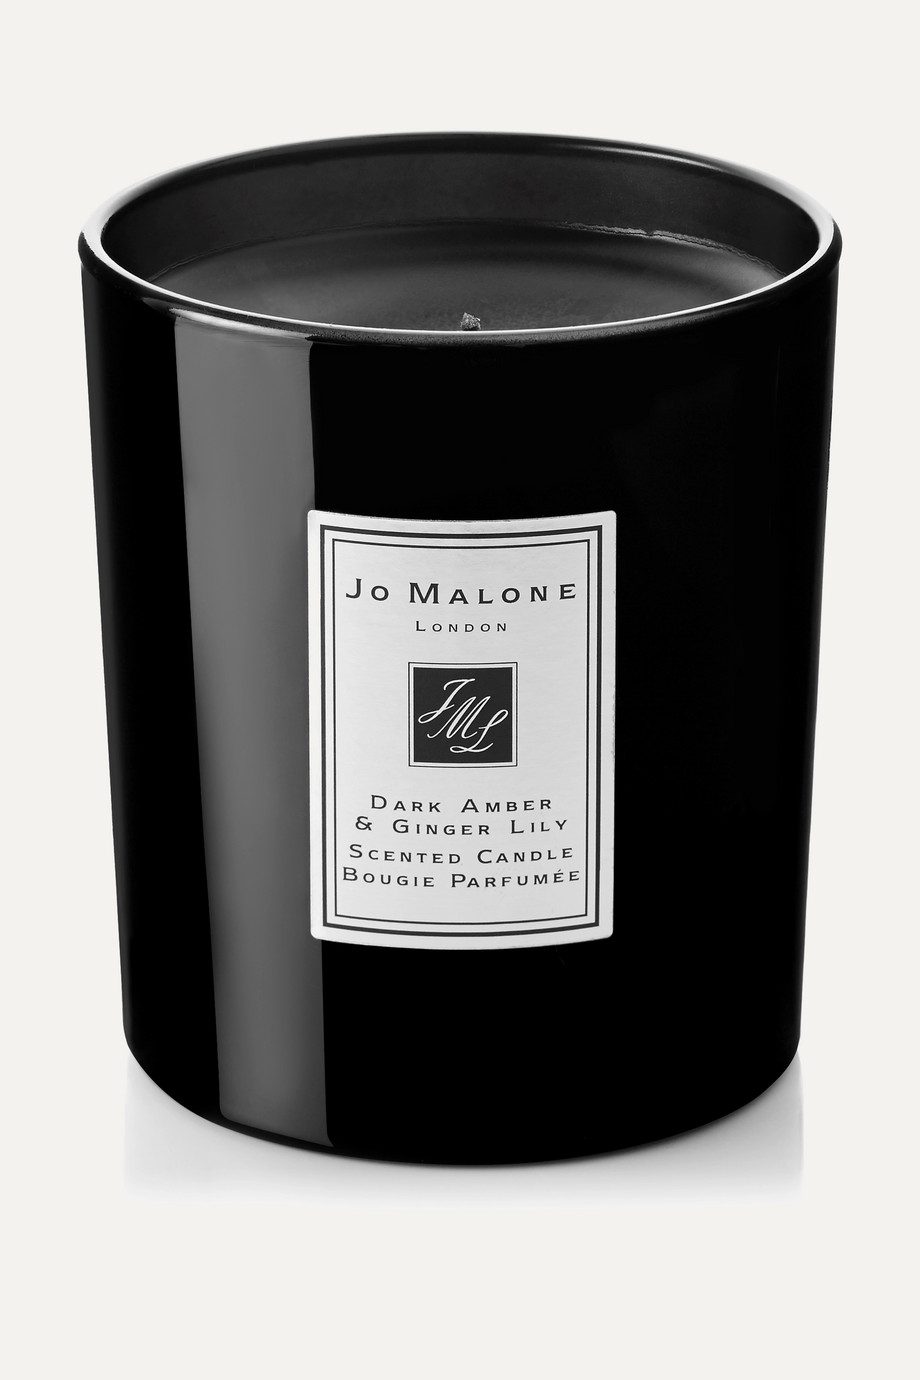 JO MALONE LONDON Dark Amber & Ginger Lily Scented Home Candle, 200g